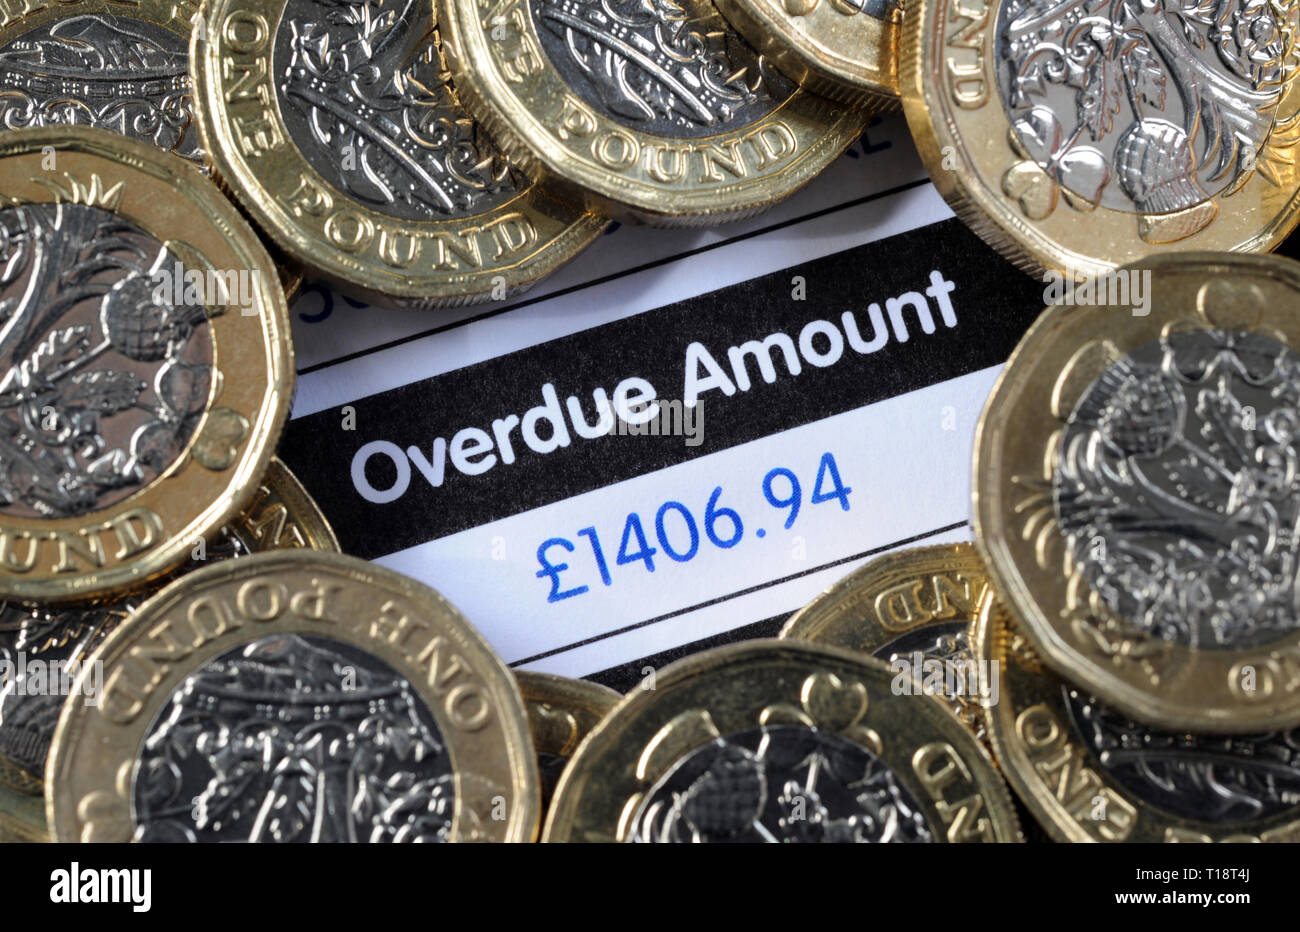 OVERDUE AMOUNT DEMAND LETTER WITH ONE POUND COINS RE LOANS DEBT BANK PAYMENTS BUDGETS BILL HOME OWNERS BILLS ETC UK - Stock Image